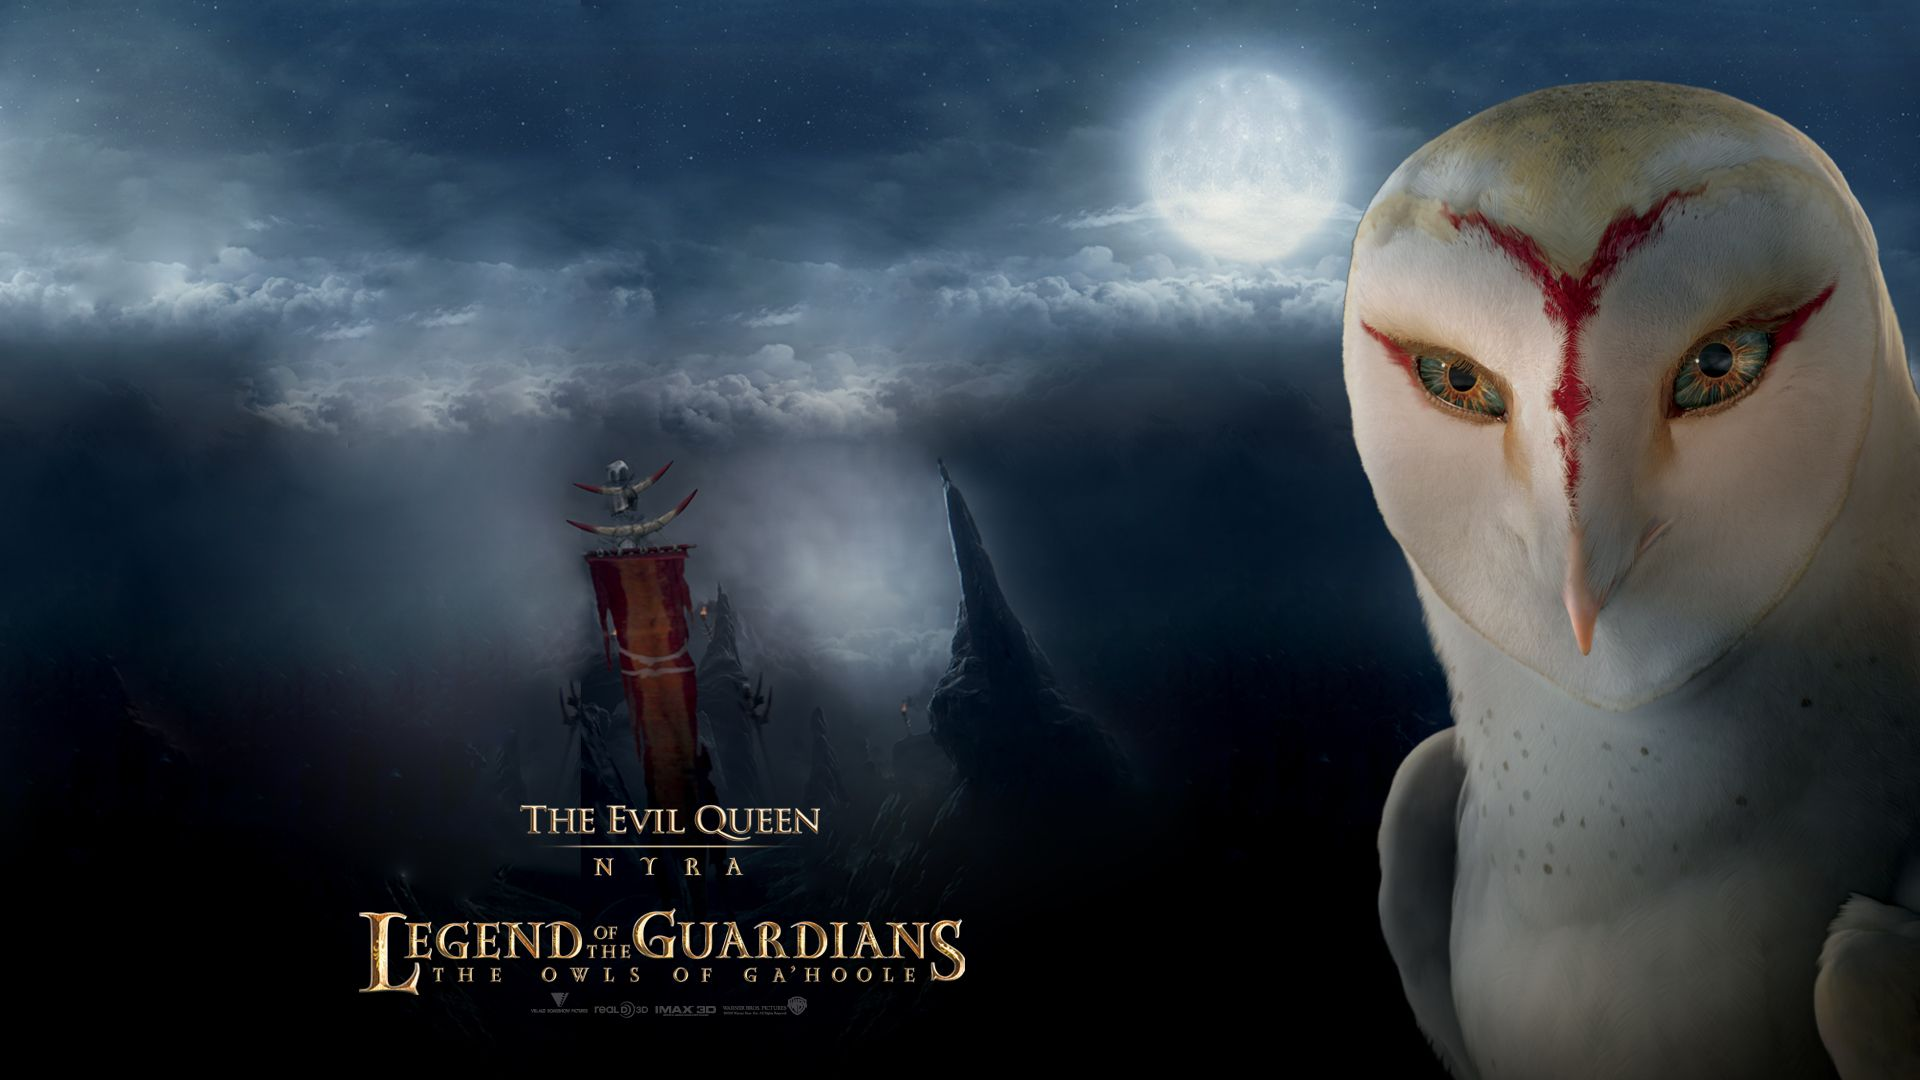 Legend Of The Guardians Owl Images Nyra The Owl From Legend Of The Guardians Legend Of The Guardians Movie Wallpapers Ga Hoole